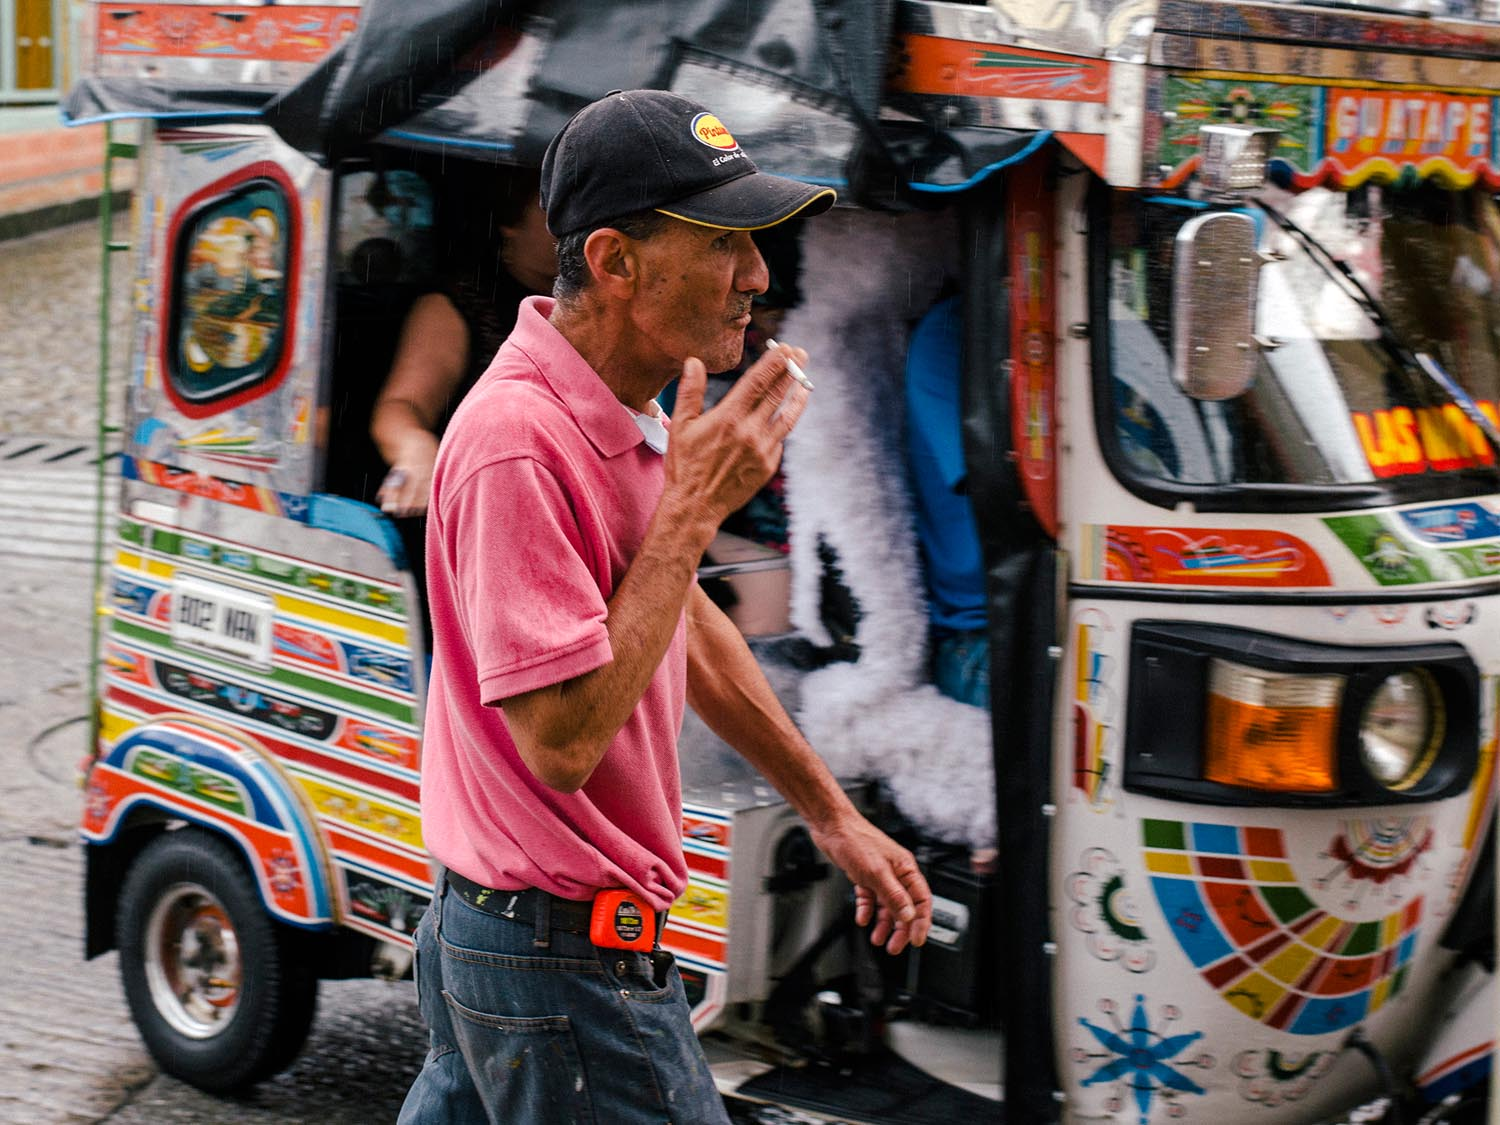 Yep, tuktuks exist also in Colombia…